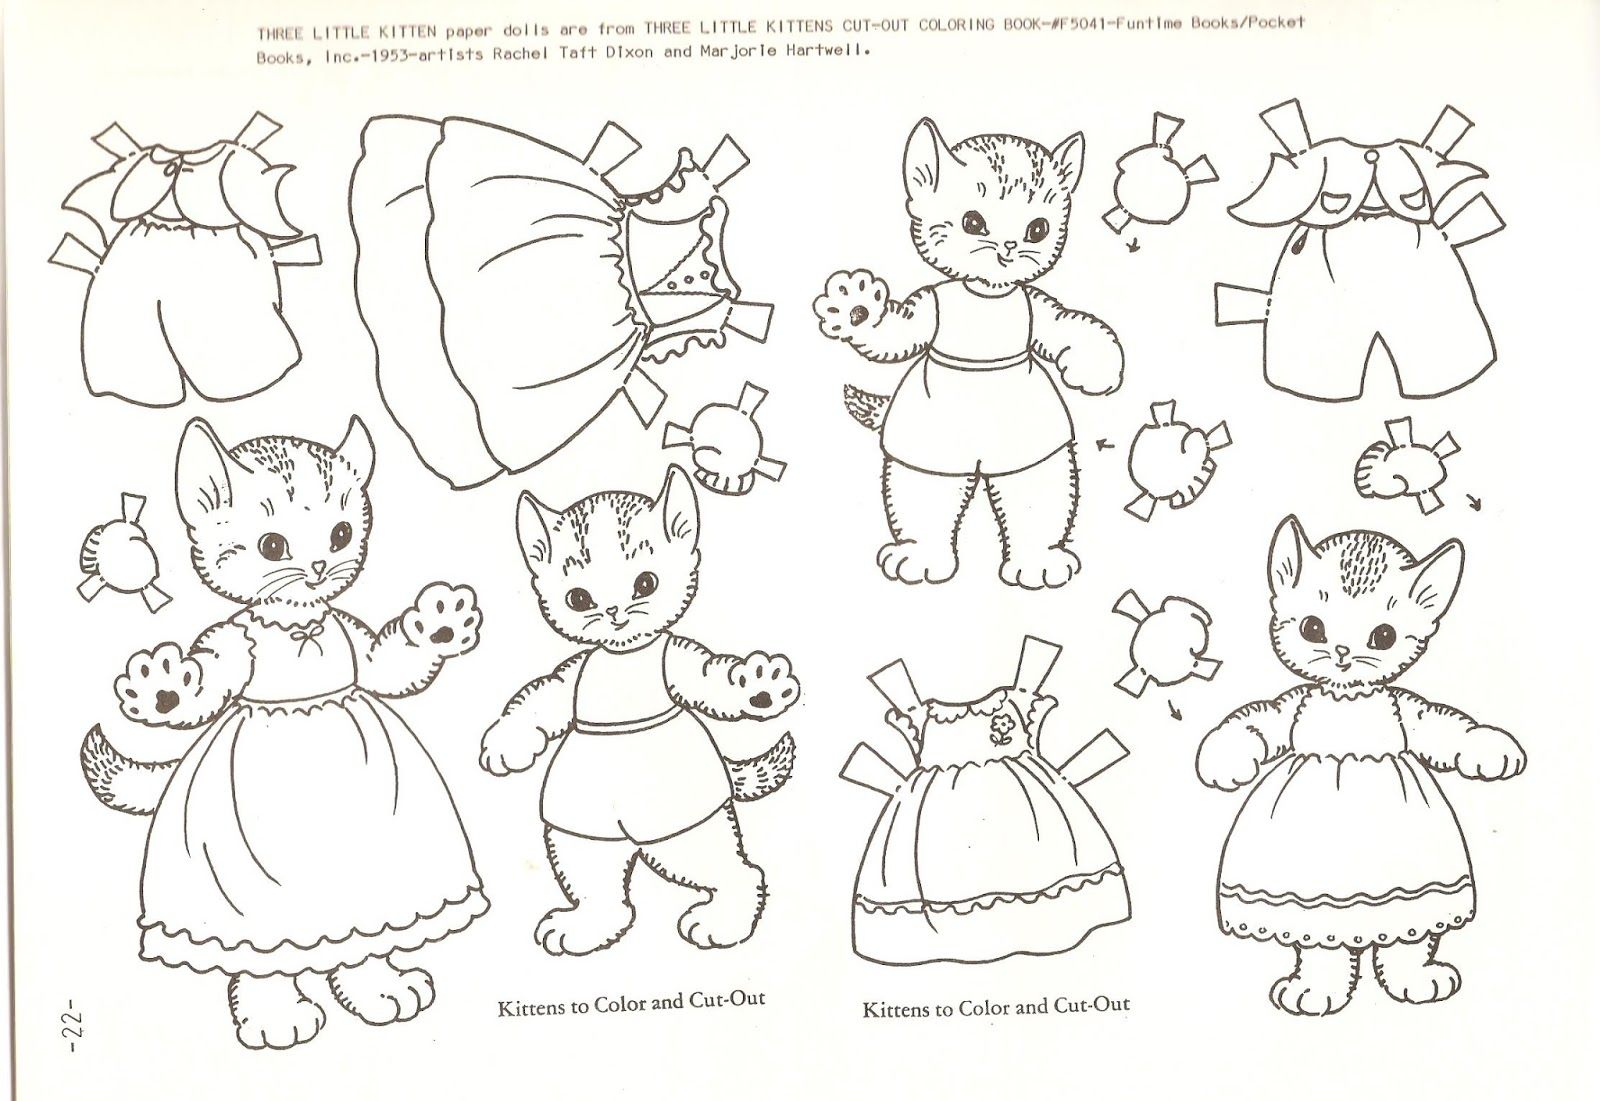 Your Dress And Dolly S Three Little Kittens Betty J Rotent Here Are A Few Paper Doll Pages Scanned From T Paper Dolls Vintage Paper Dolls Paper Dolls Printable